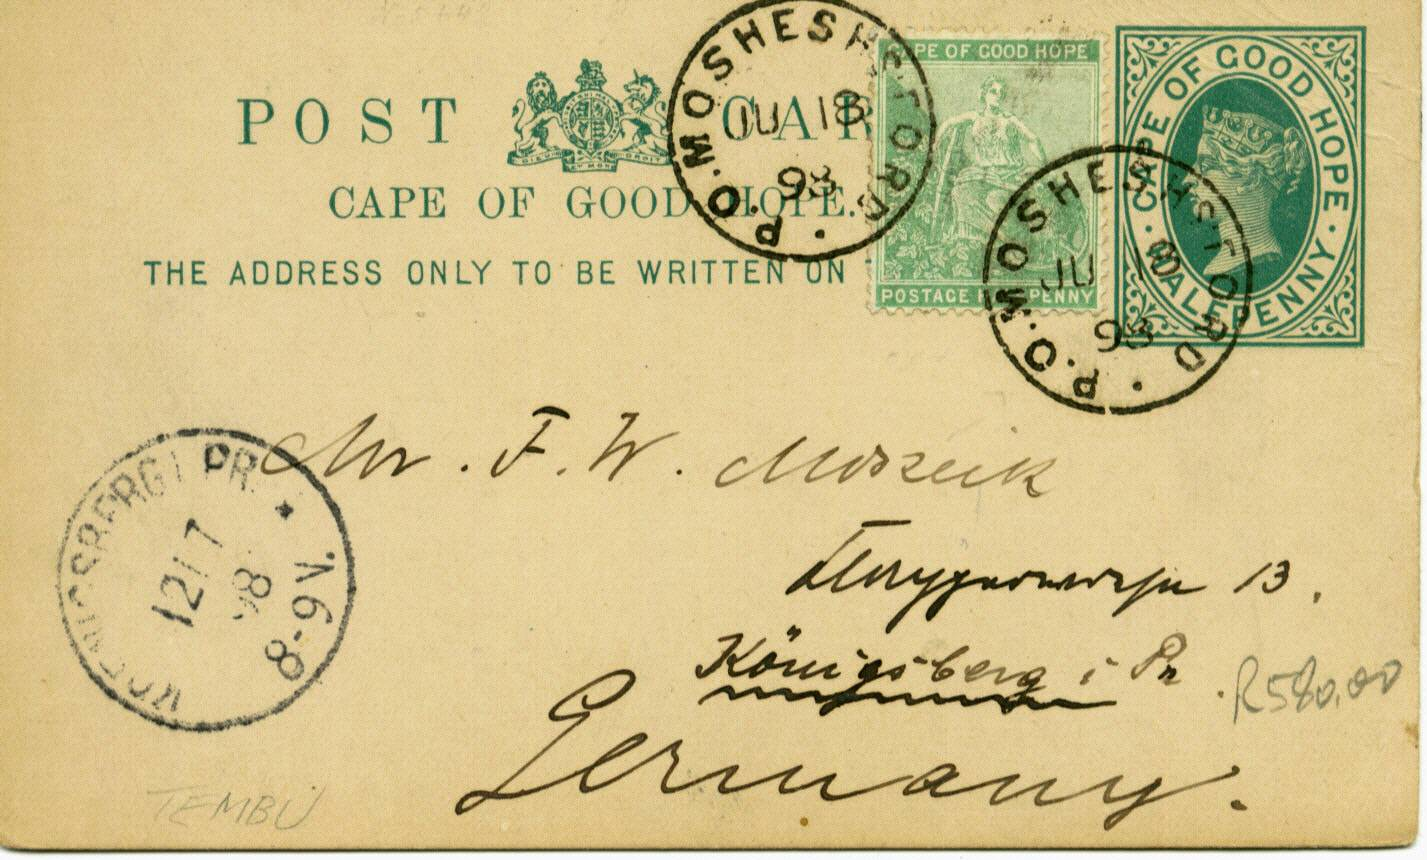 Circular Postmarks of the Cape of Good Hope